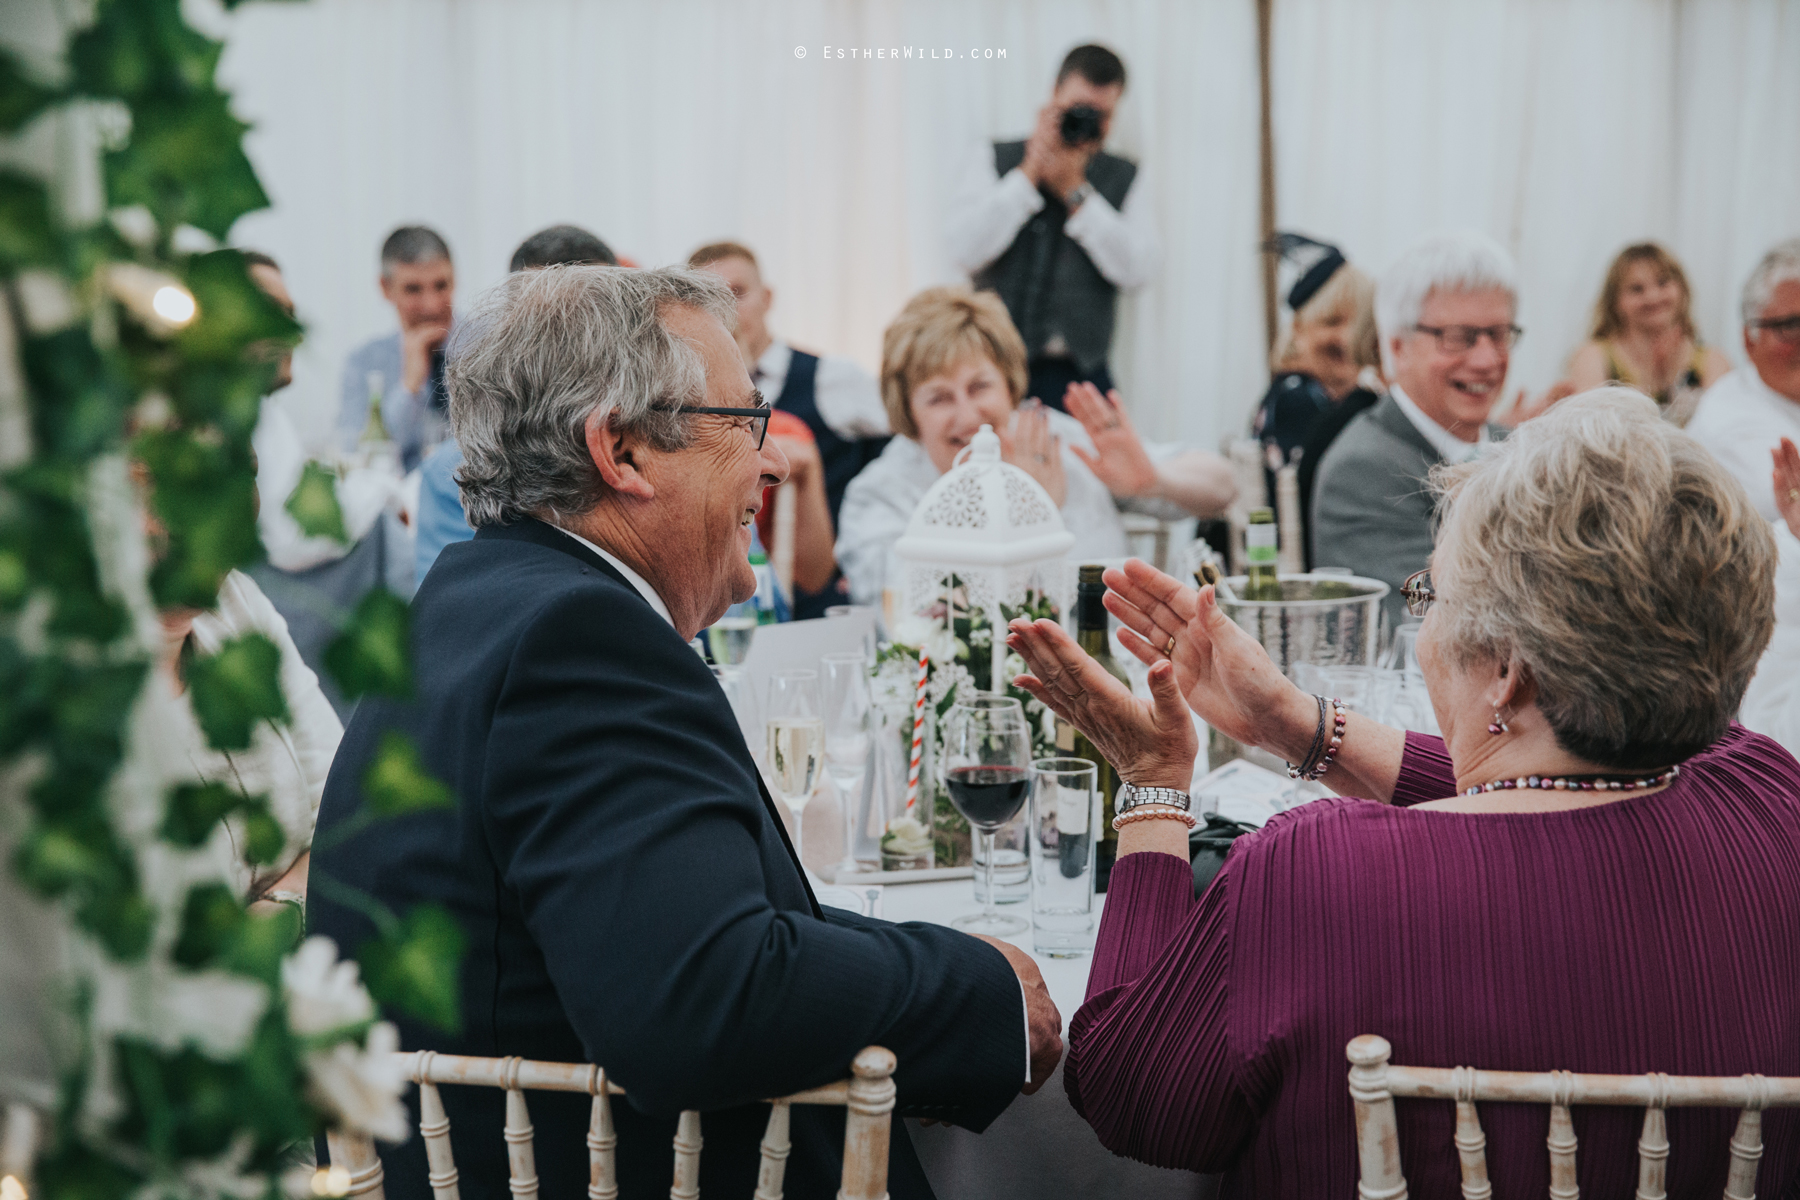 Wootton_Wedding_Copyright_Esther_Wild_Photographer_IMG_2293.jpg